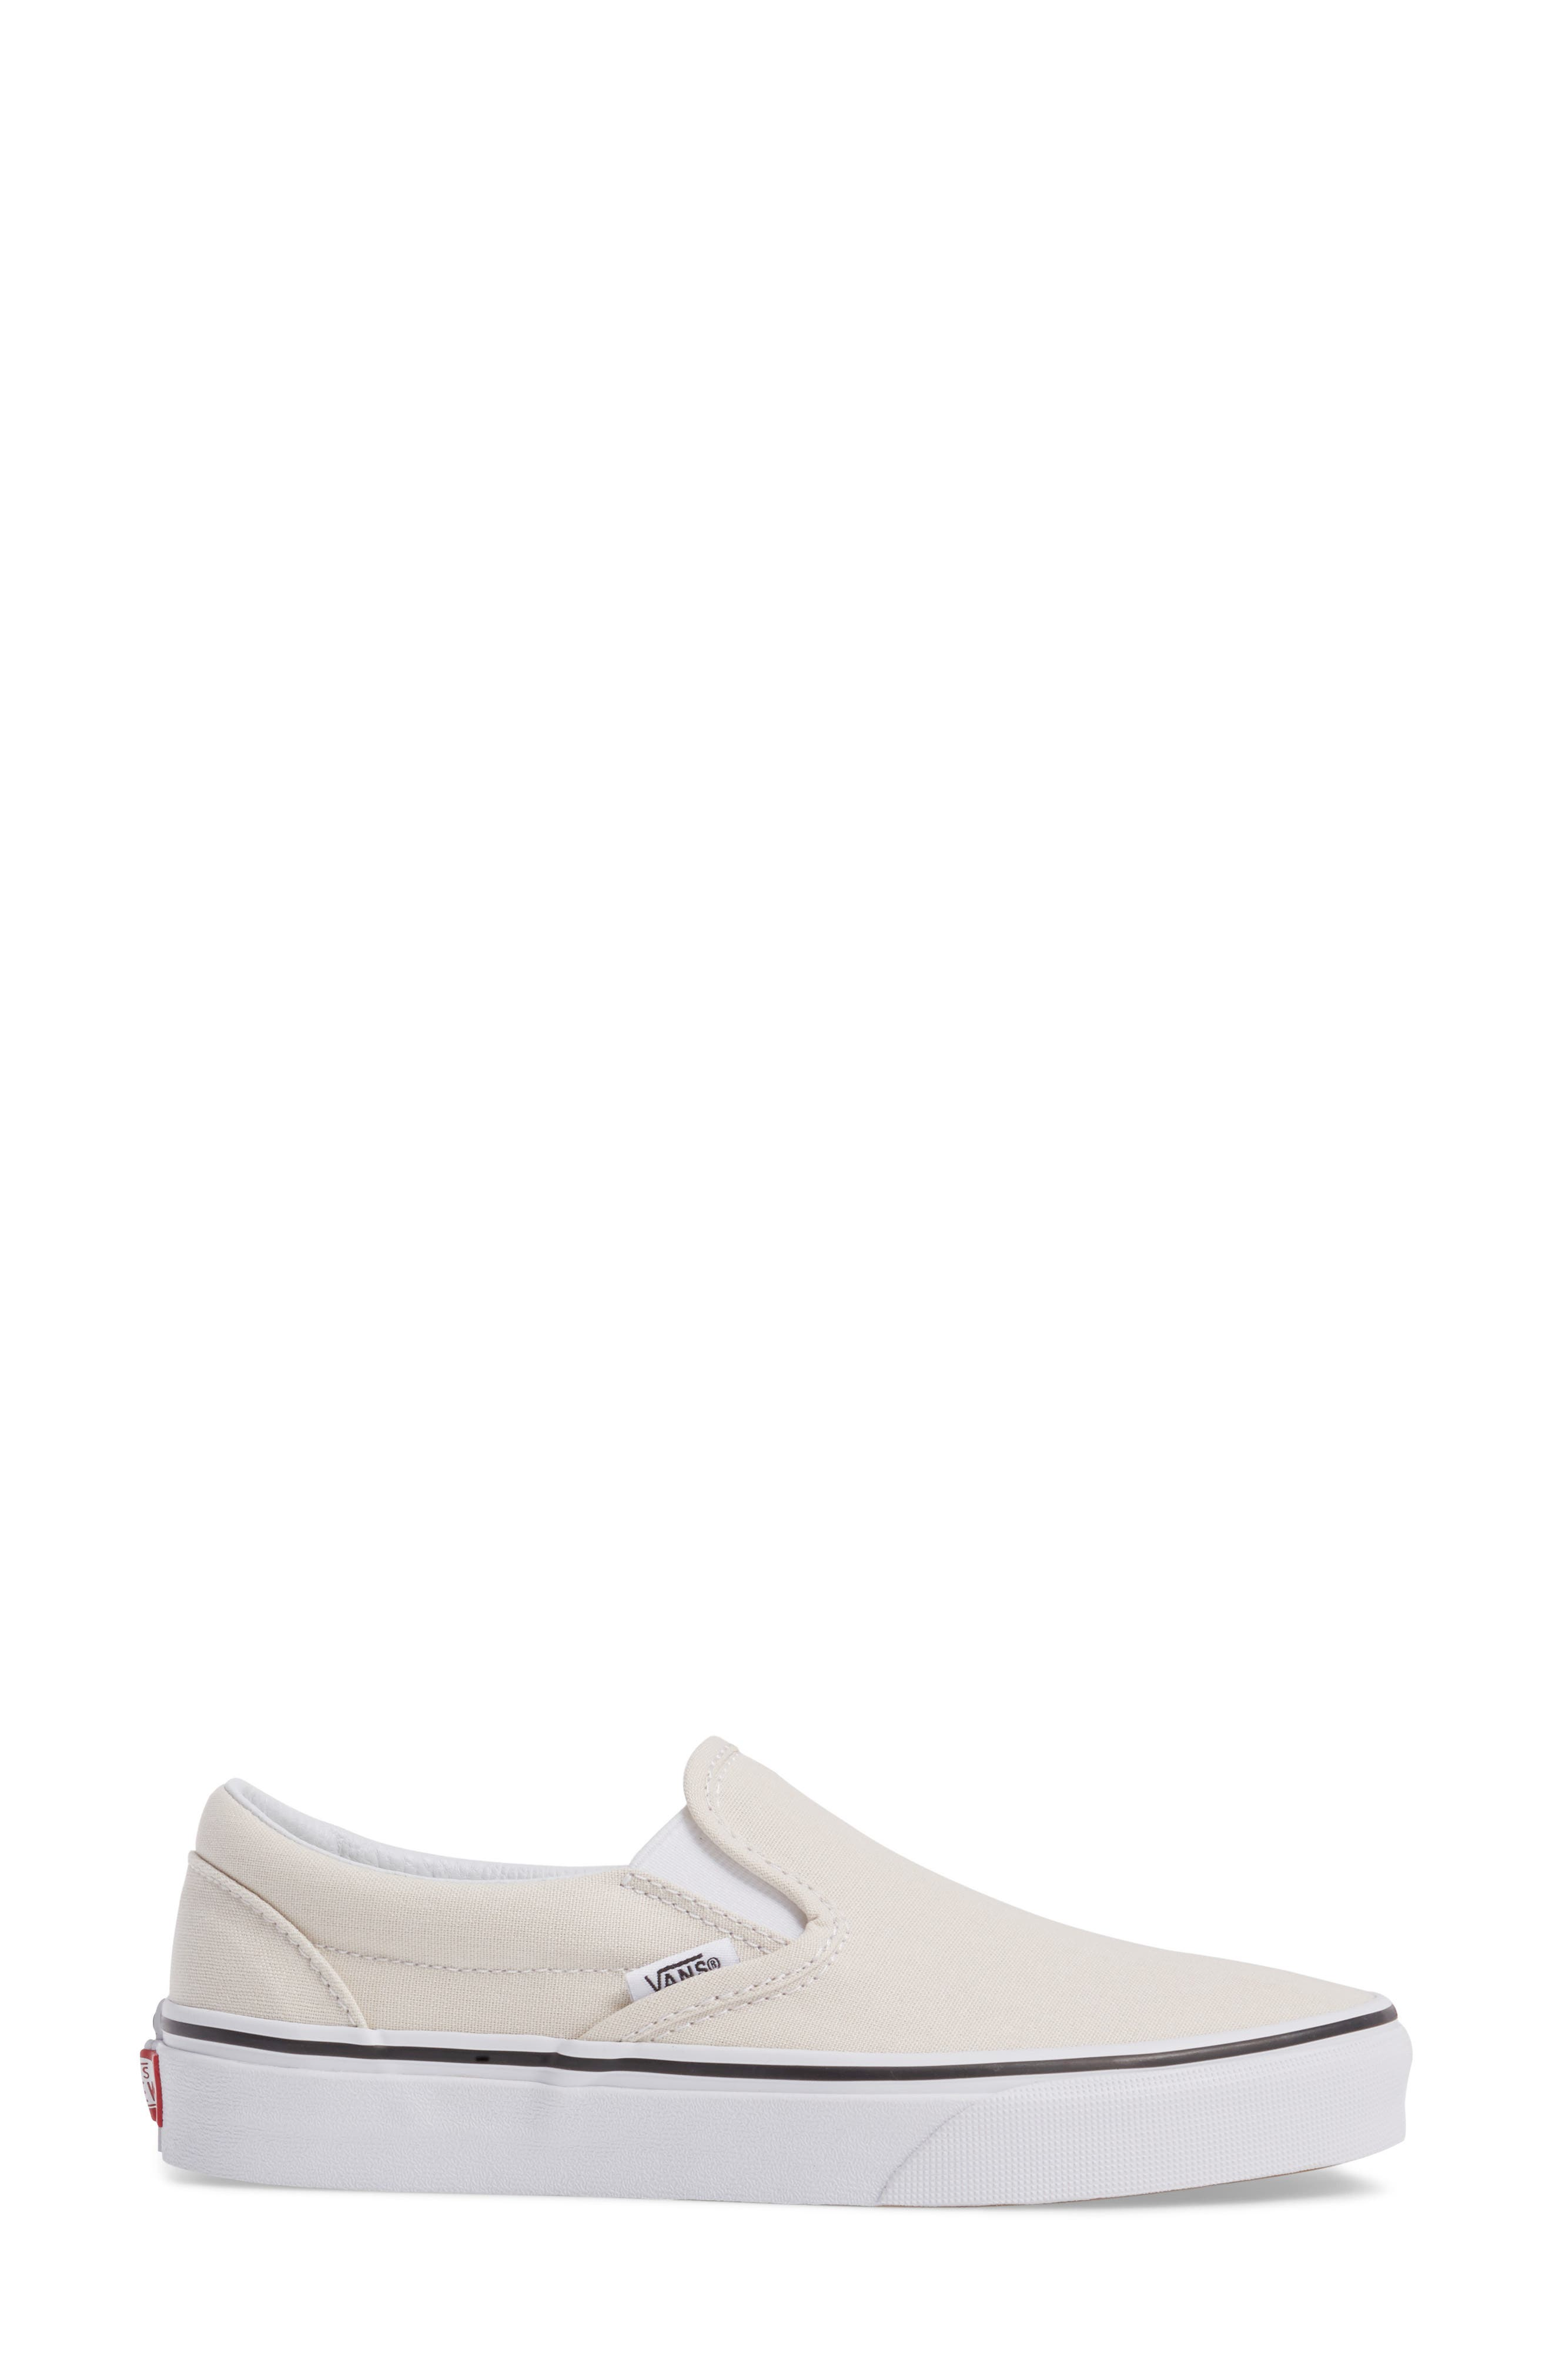 Classic Slip-On Sneaker,                             Alternate thumbnail 239, color,